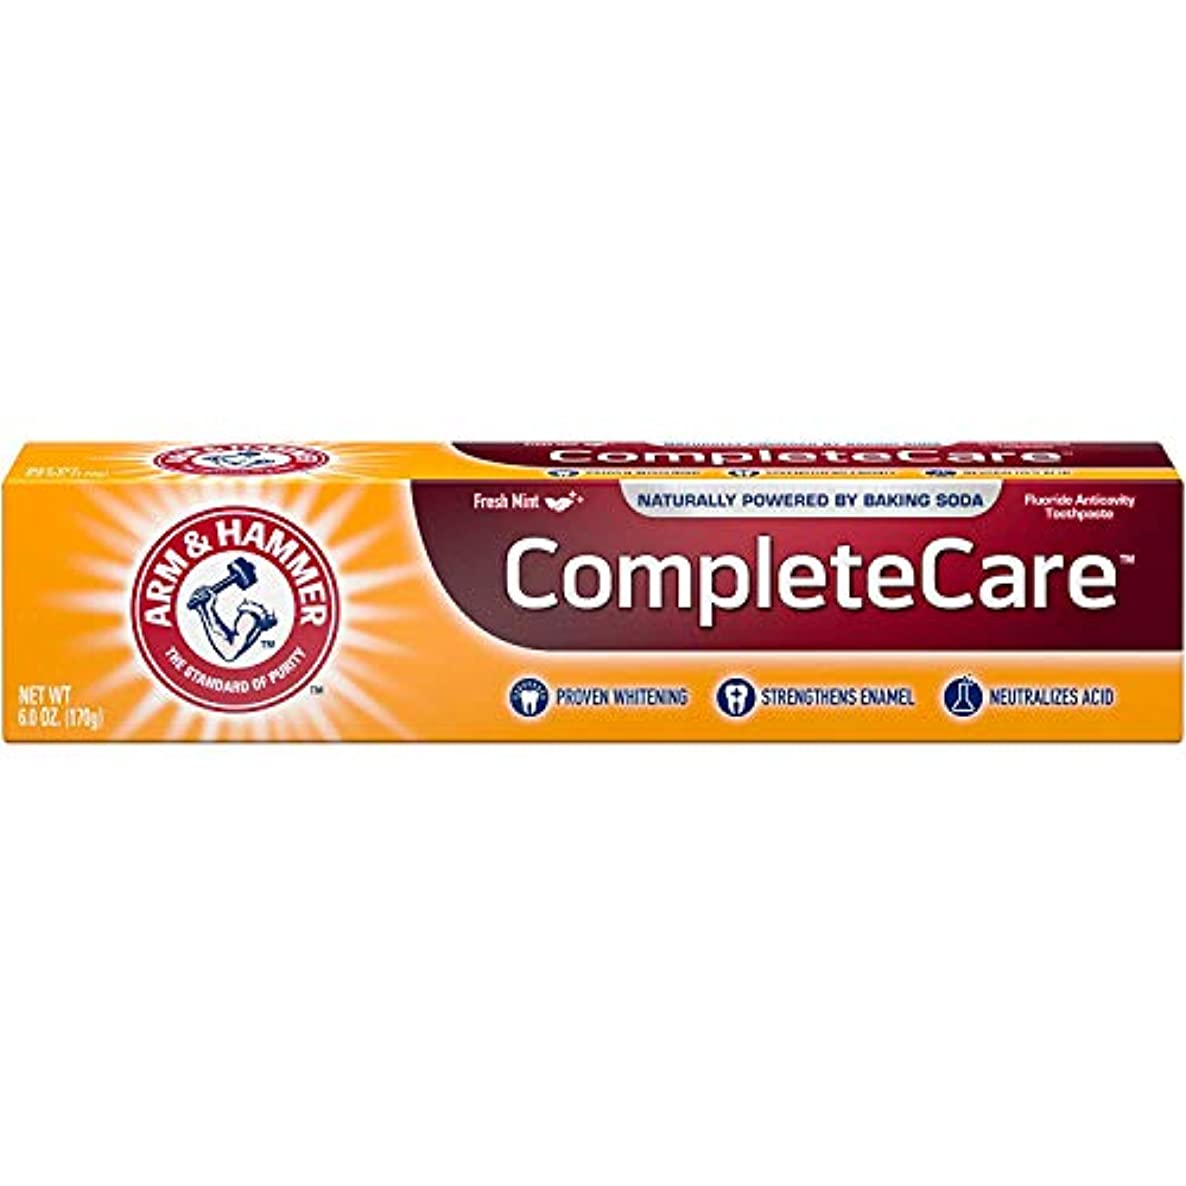 医薬品ヘルパー知り合いになるArm & Hammer Fluoride Anti-Cavity Toothpaste - 6 oz - 3 pk by Arm & Hammer